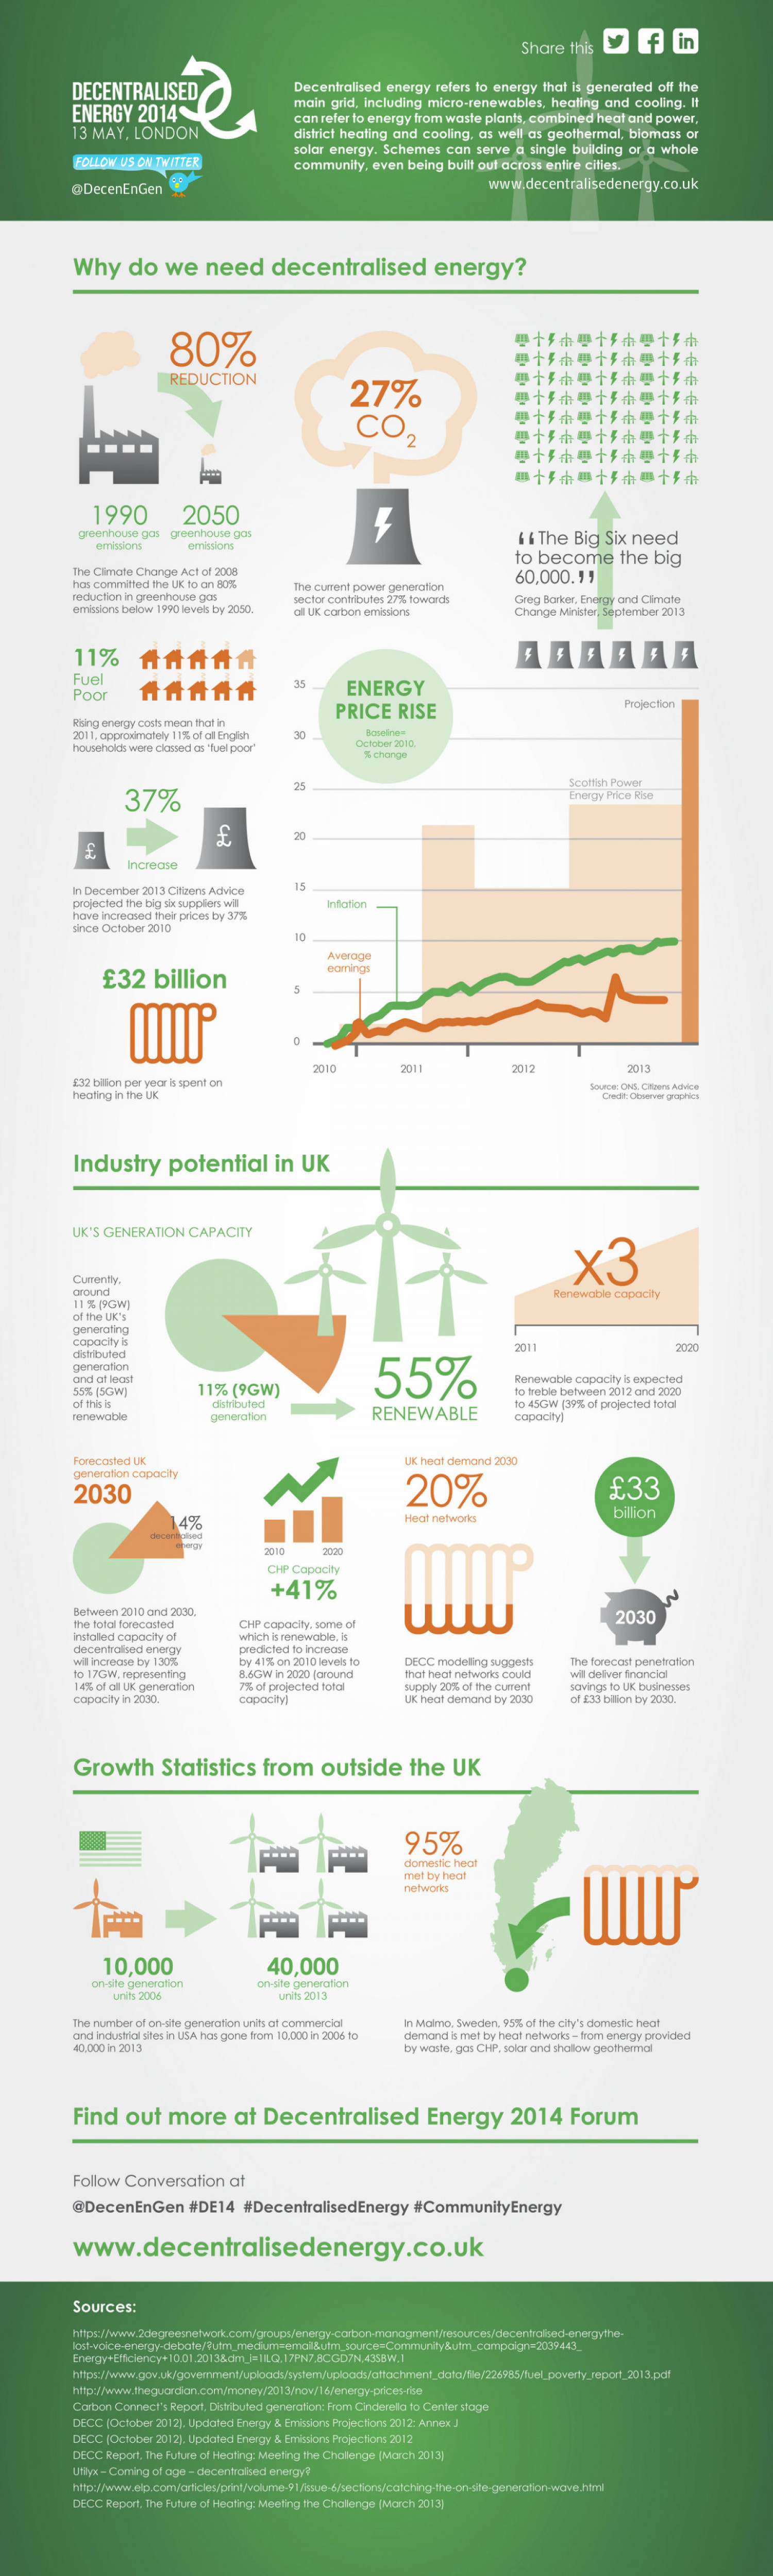 Decentralised Energy 2014 13 May, London Infographic